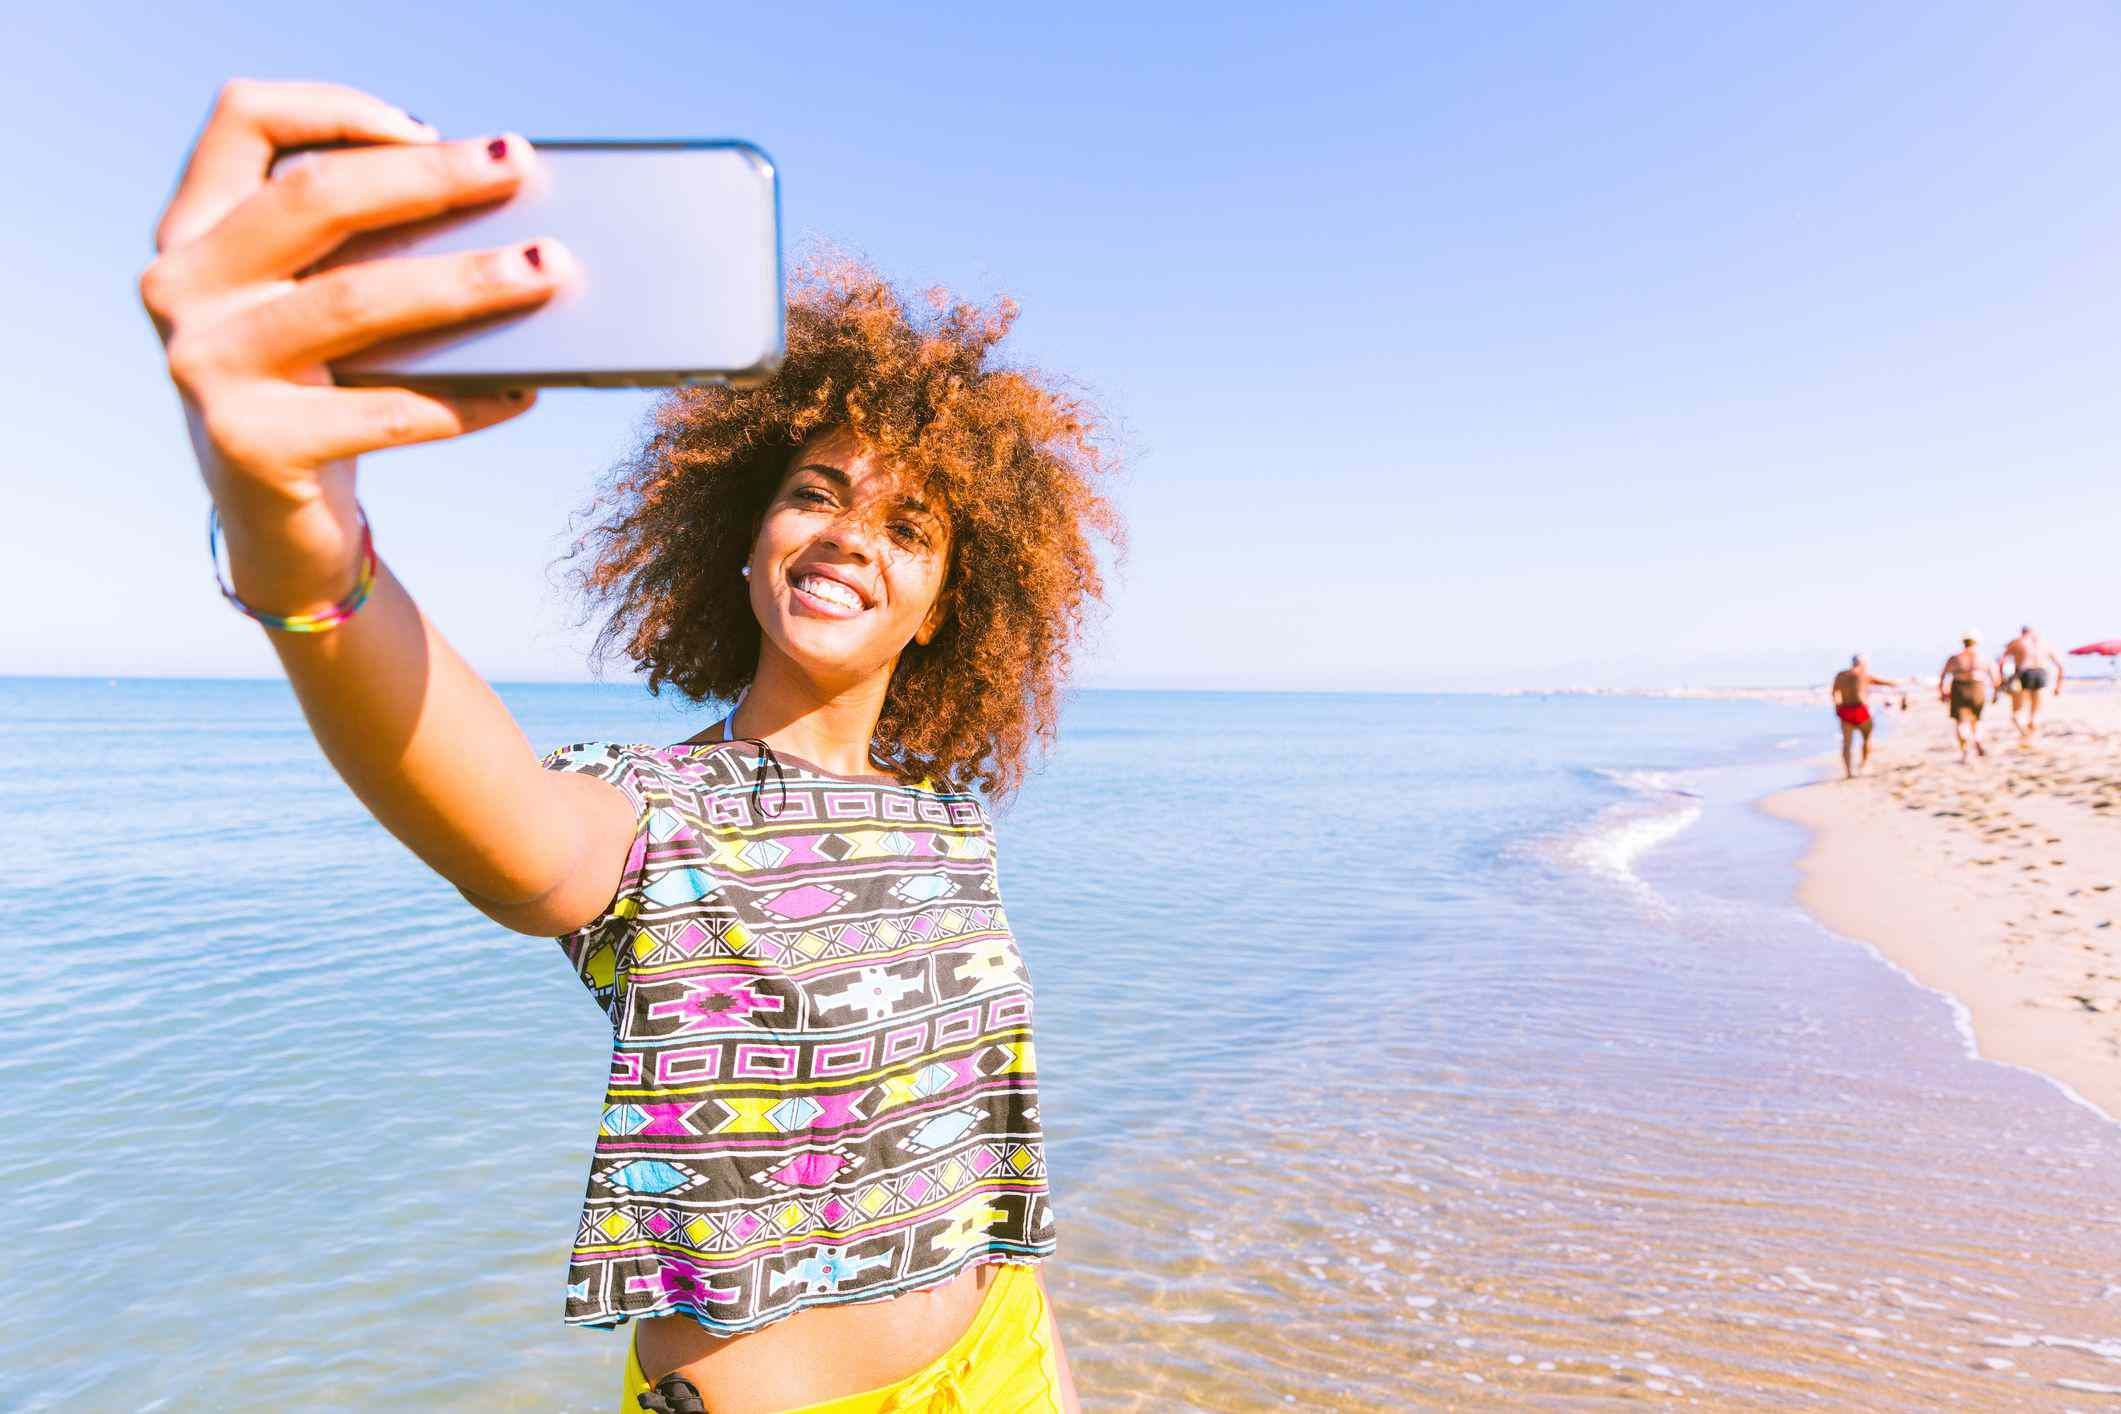 A tourist taking a selfie on the shore at the ocean